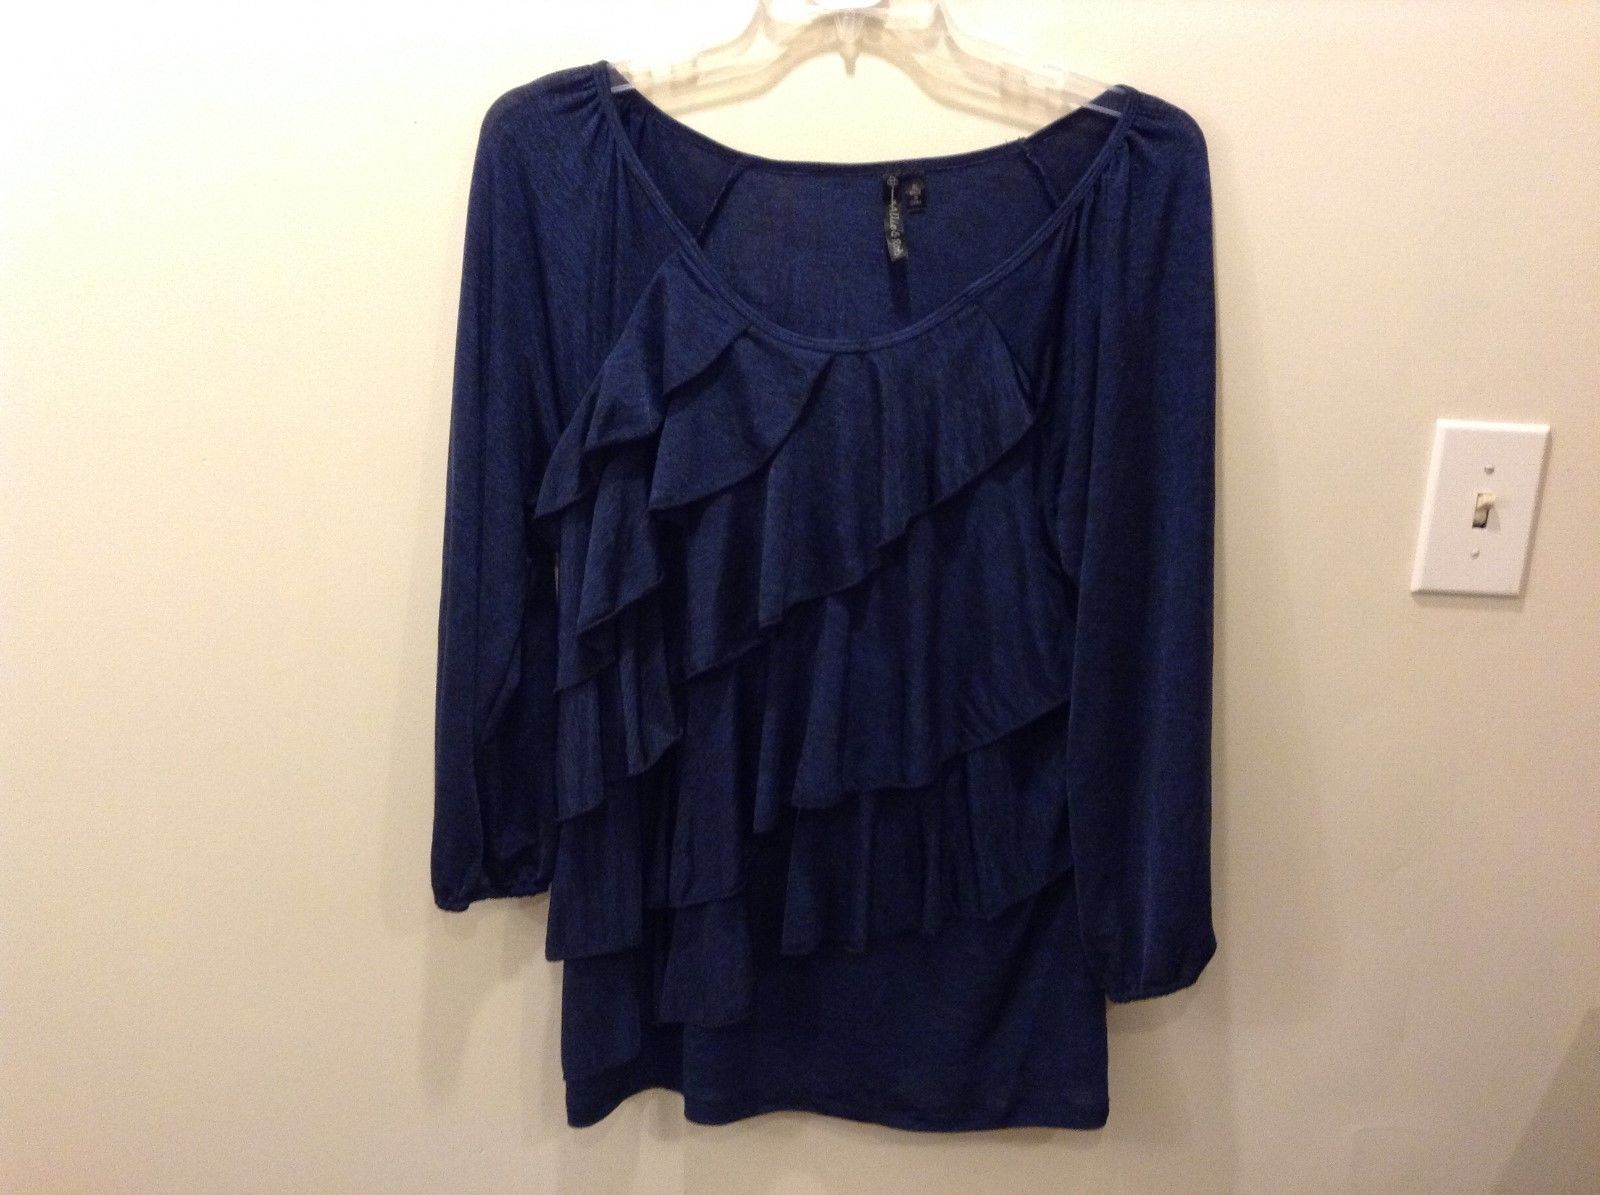 Allie & Rob Shimmery Ruffled Navy Blue Blouse Size XL